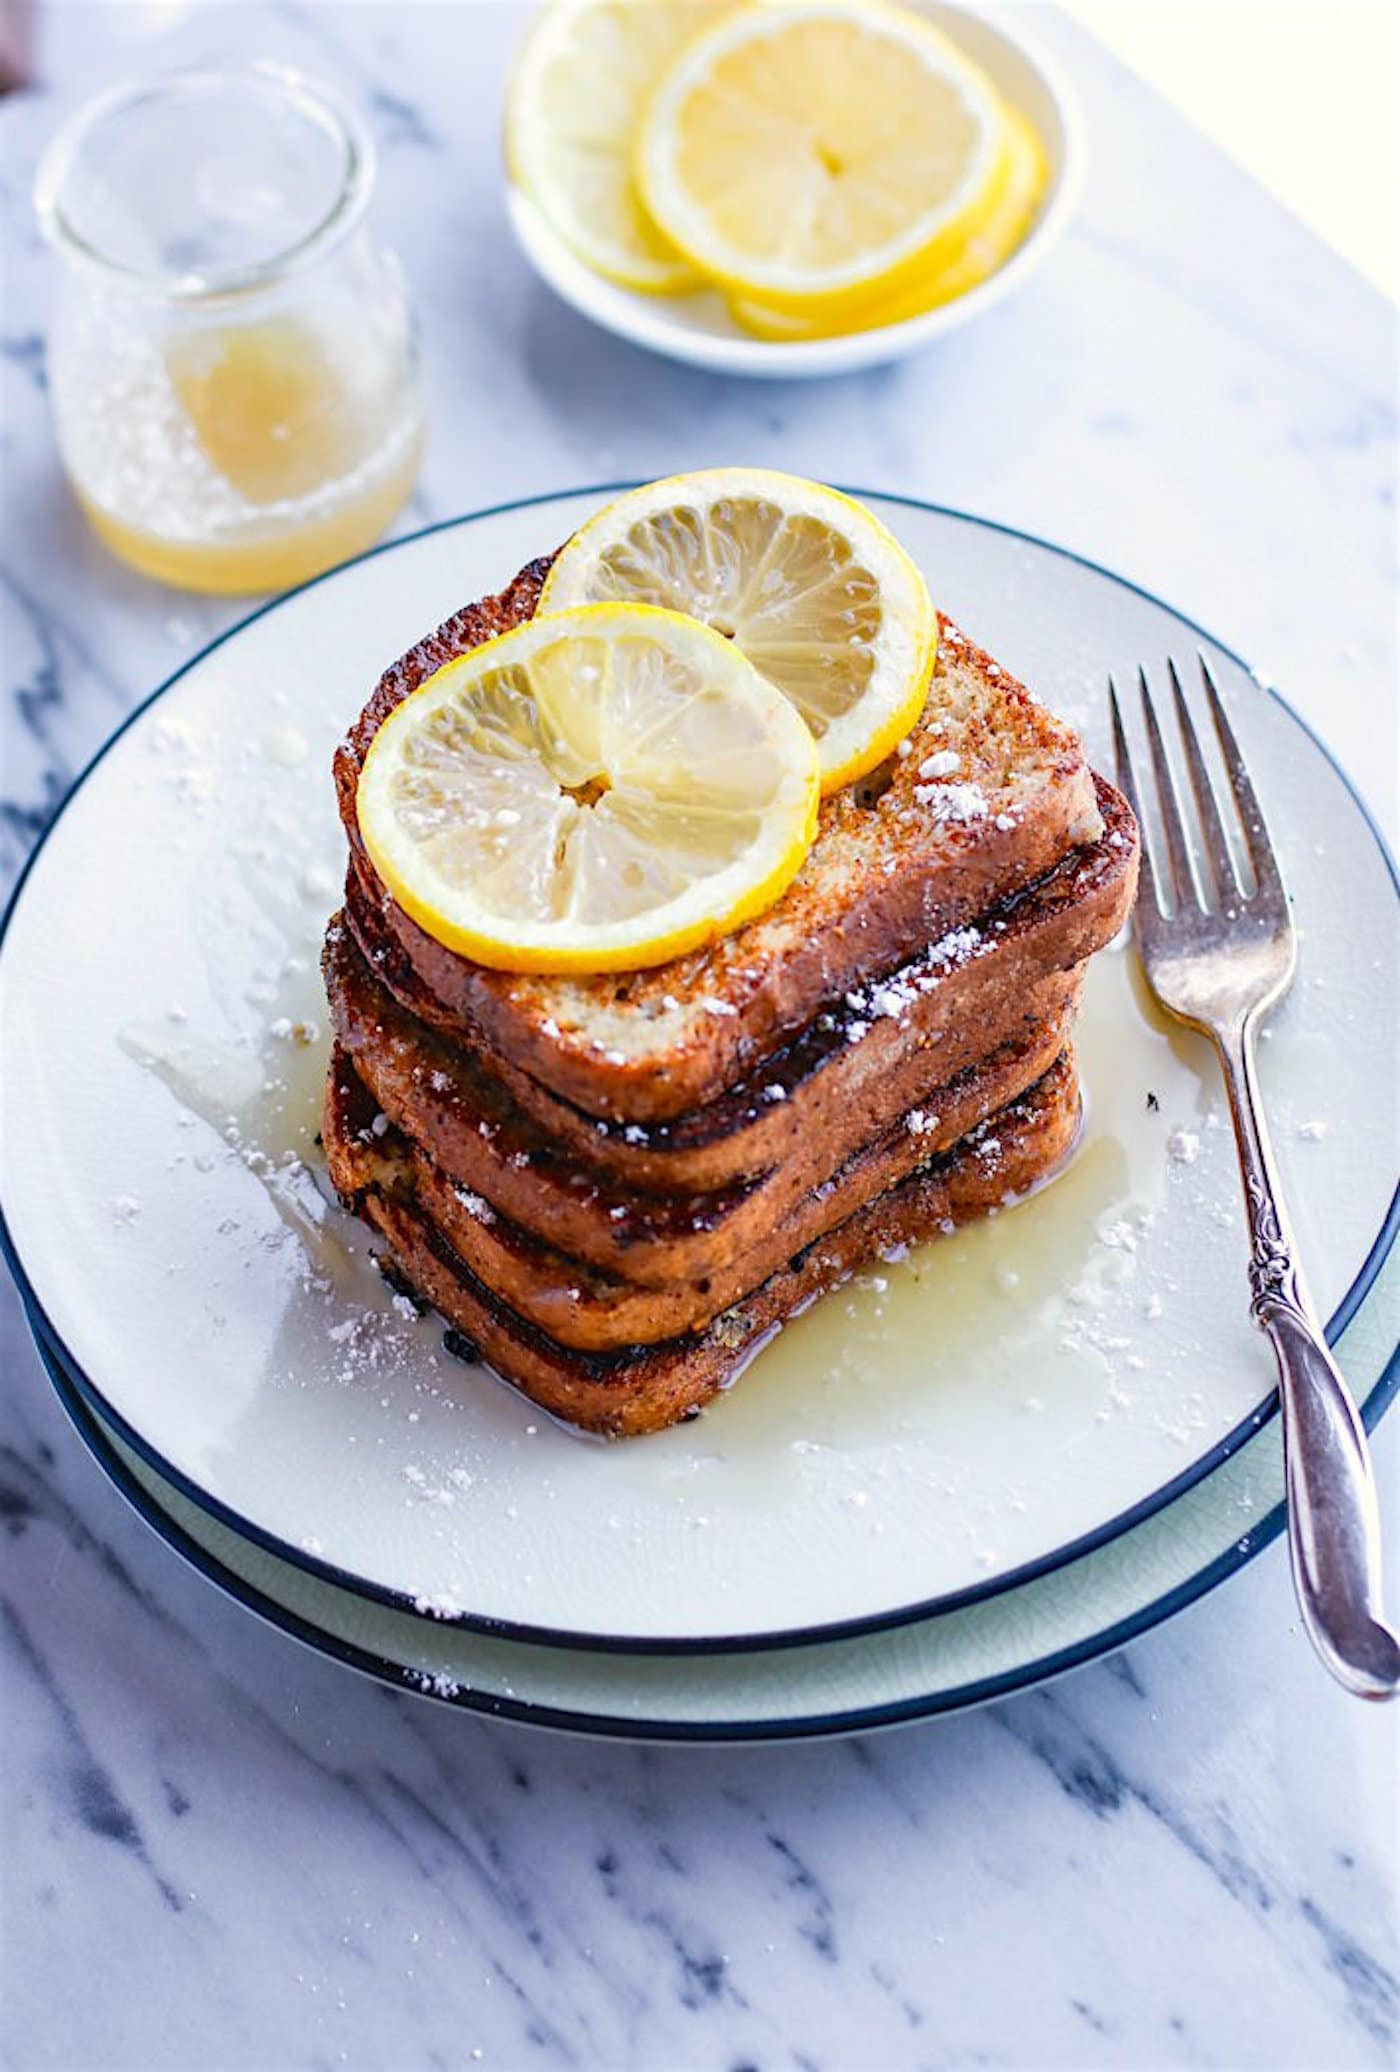 Honey Lemon Vanilla Gluten Free French Toast. Simple yet delicious flavors, easy to make, no eggs needed, and vegan Friendly! This Gluten Free French Toast breakfast is a hit for weekend brunch or for kids. Perfect for freezing and making ahead too. But the sauce.. that honey lemon cream sauce... it makes this FRENCH TOAST SHINE!